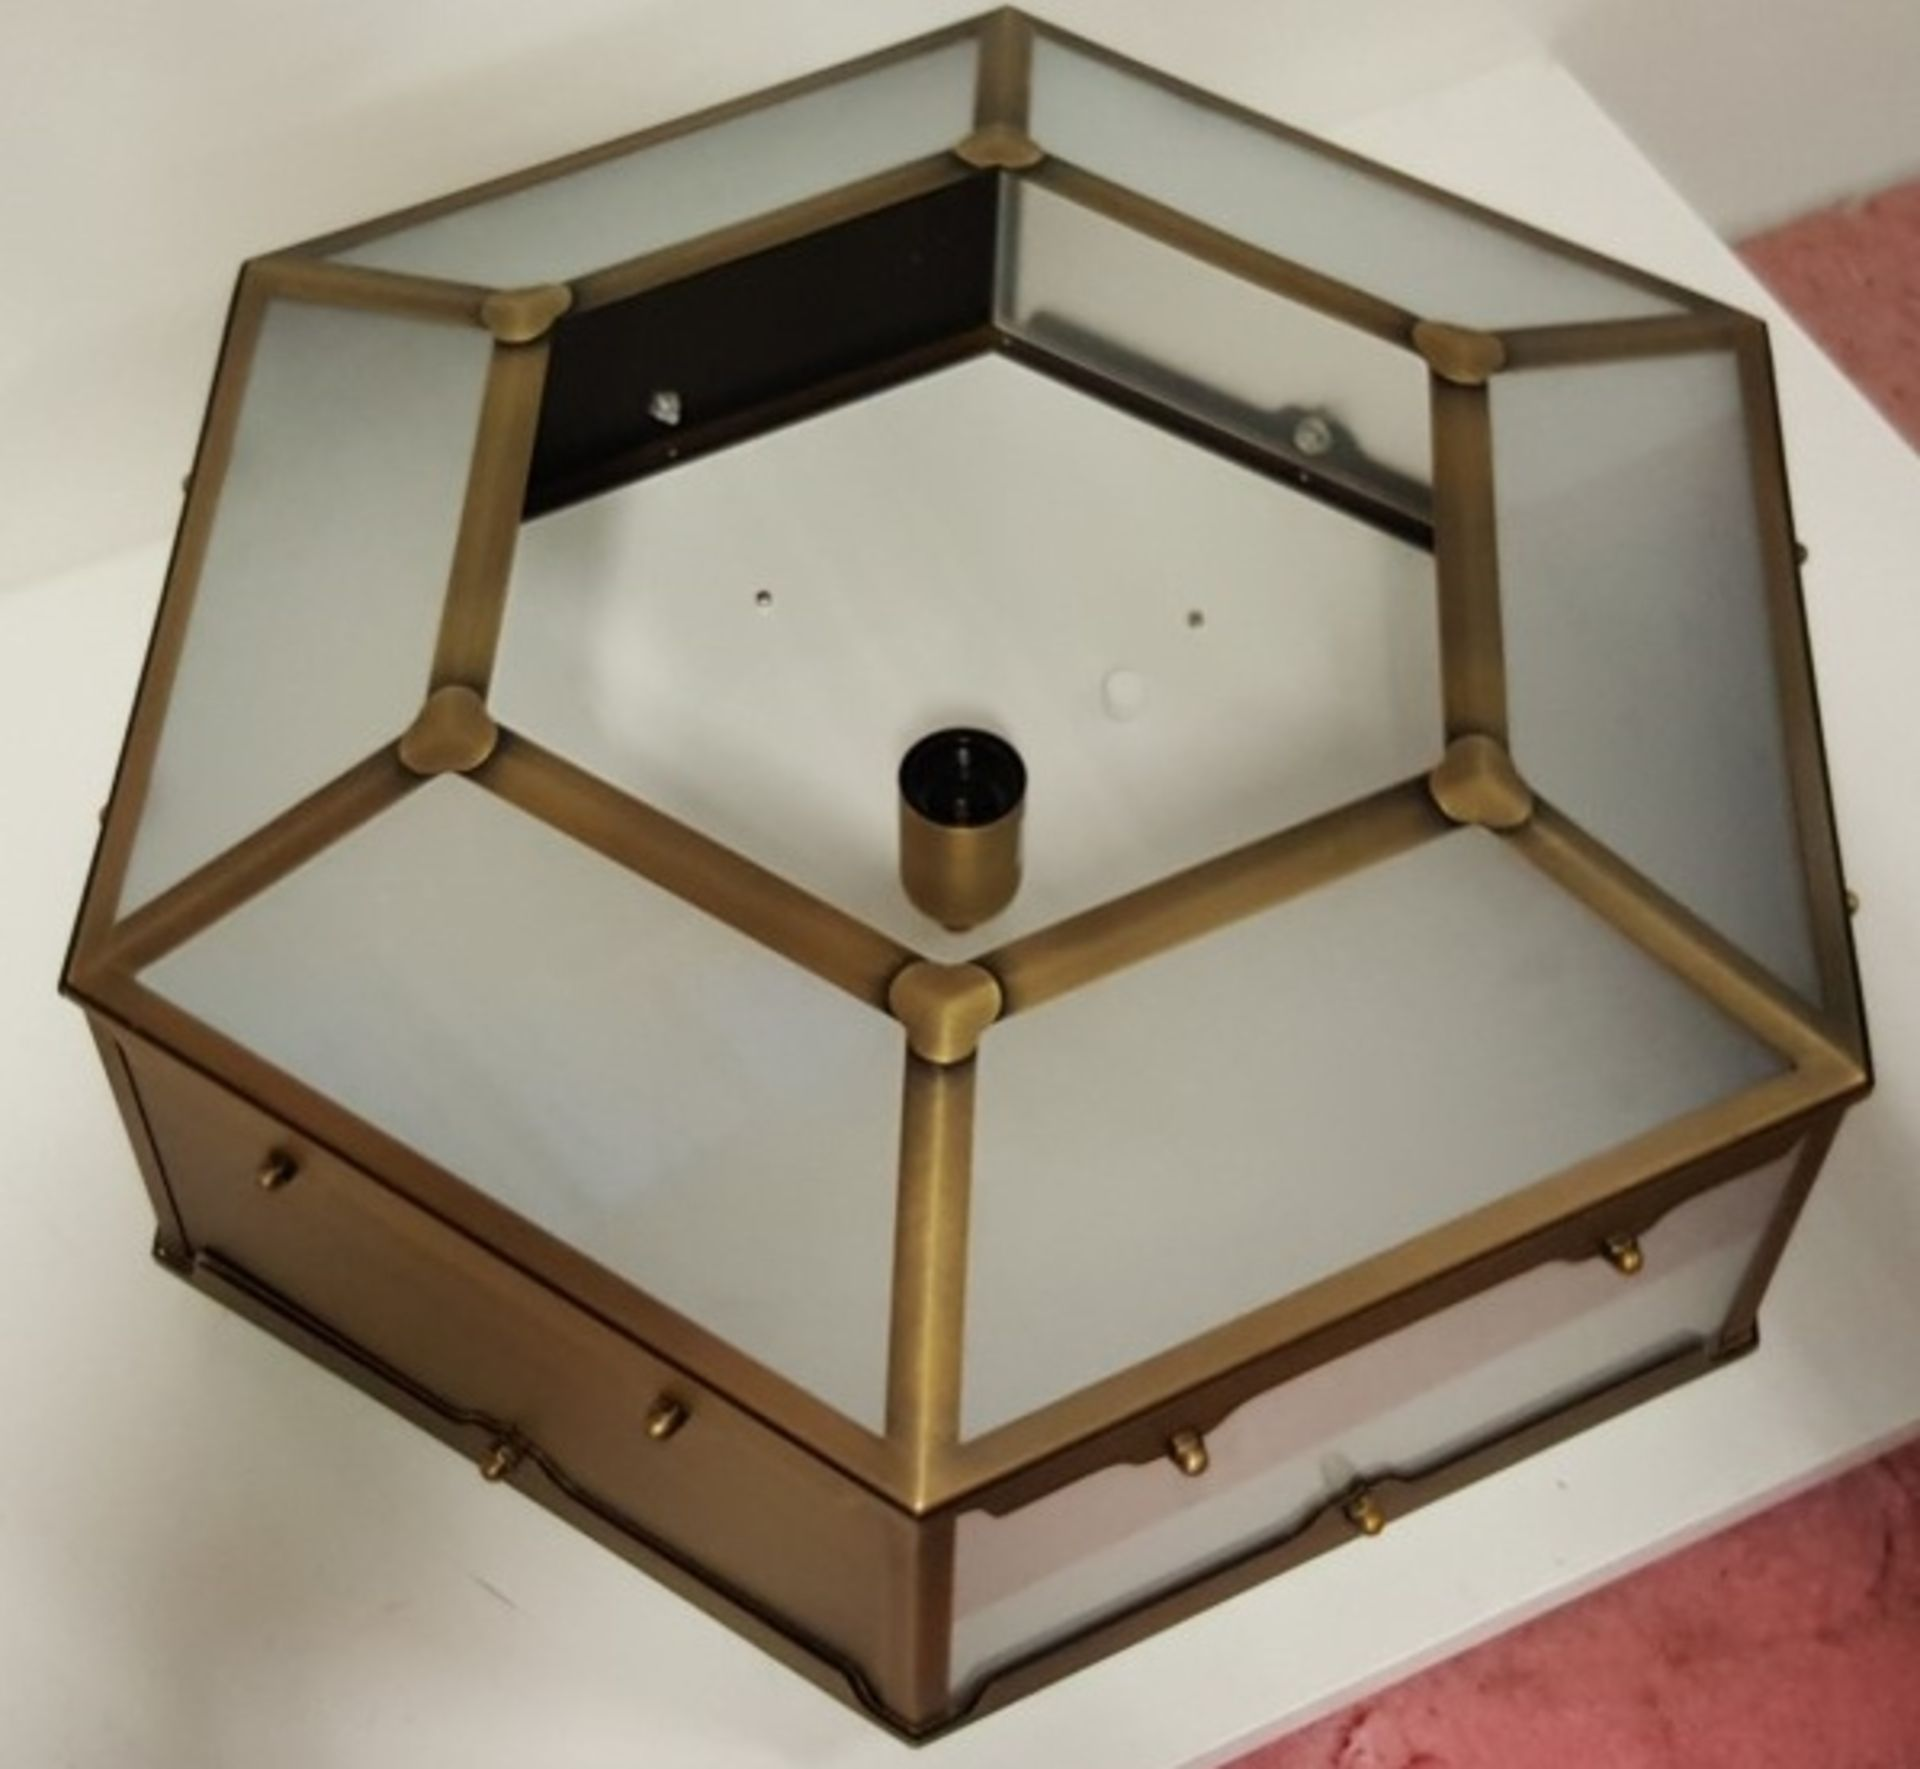 Lot 3086 - 1 x Chelsom Flush Fitting Hexagonal Shaped Light Fitting In A Antique Brass Finish - REF:J2376